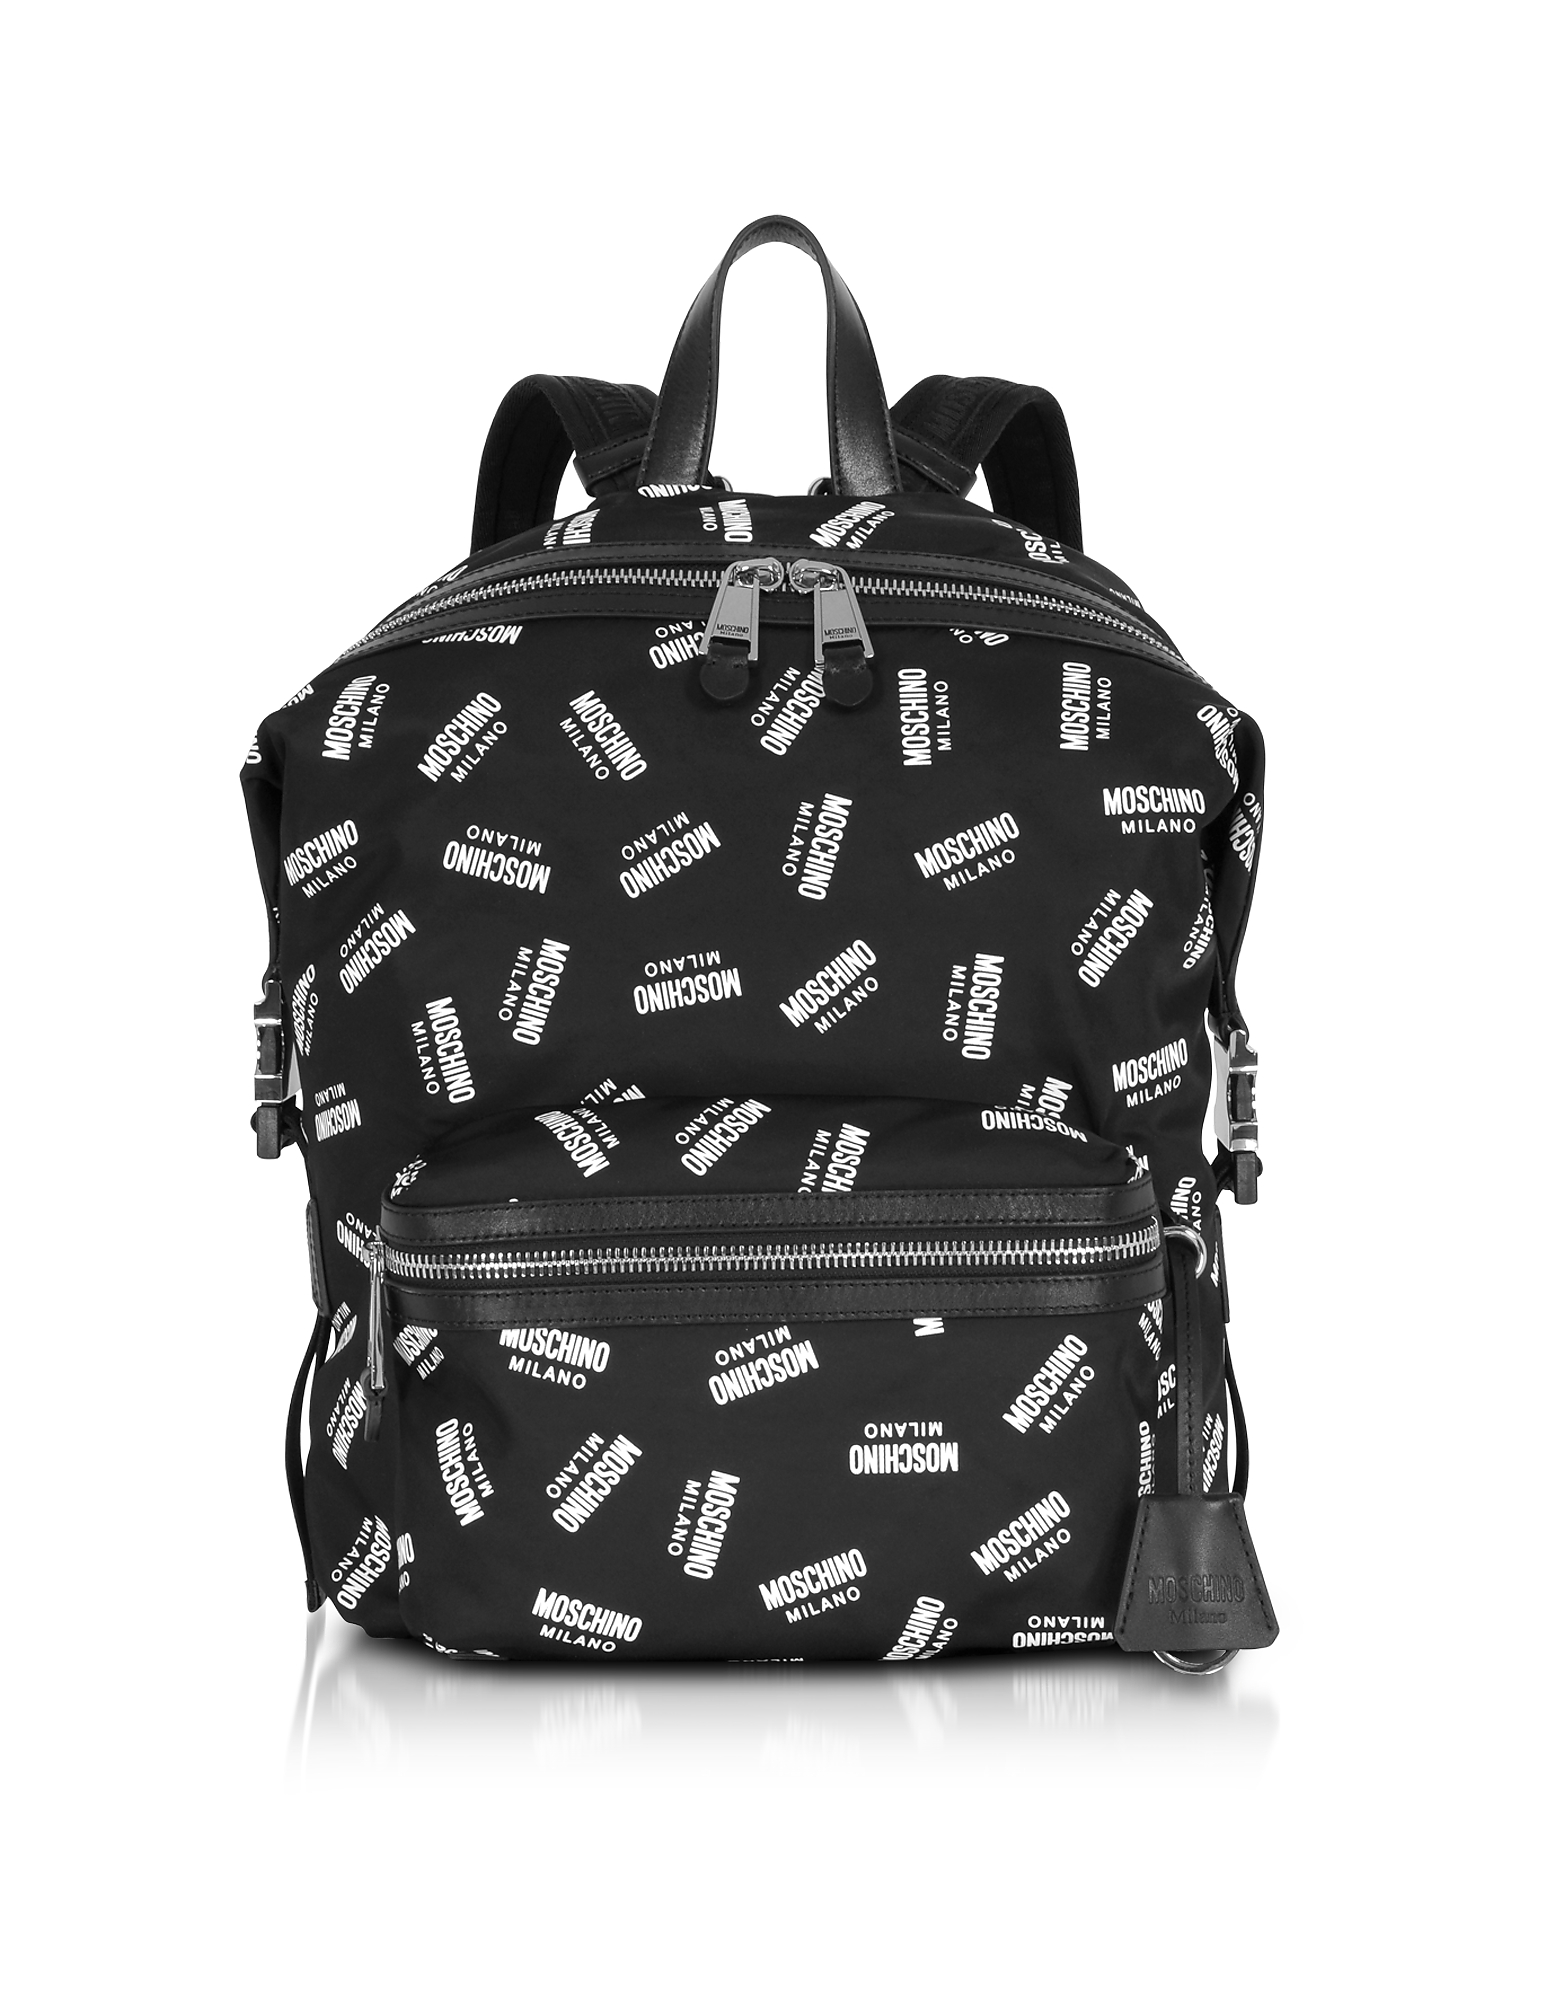 Moschino Handbags, Allover Signature Printed Black Backpack